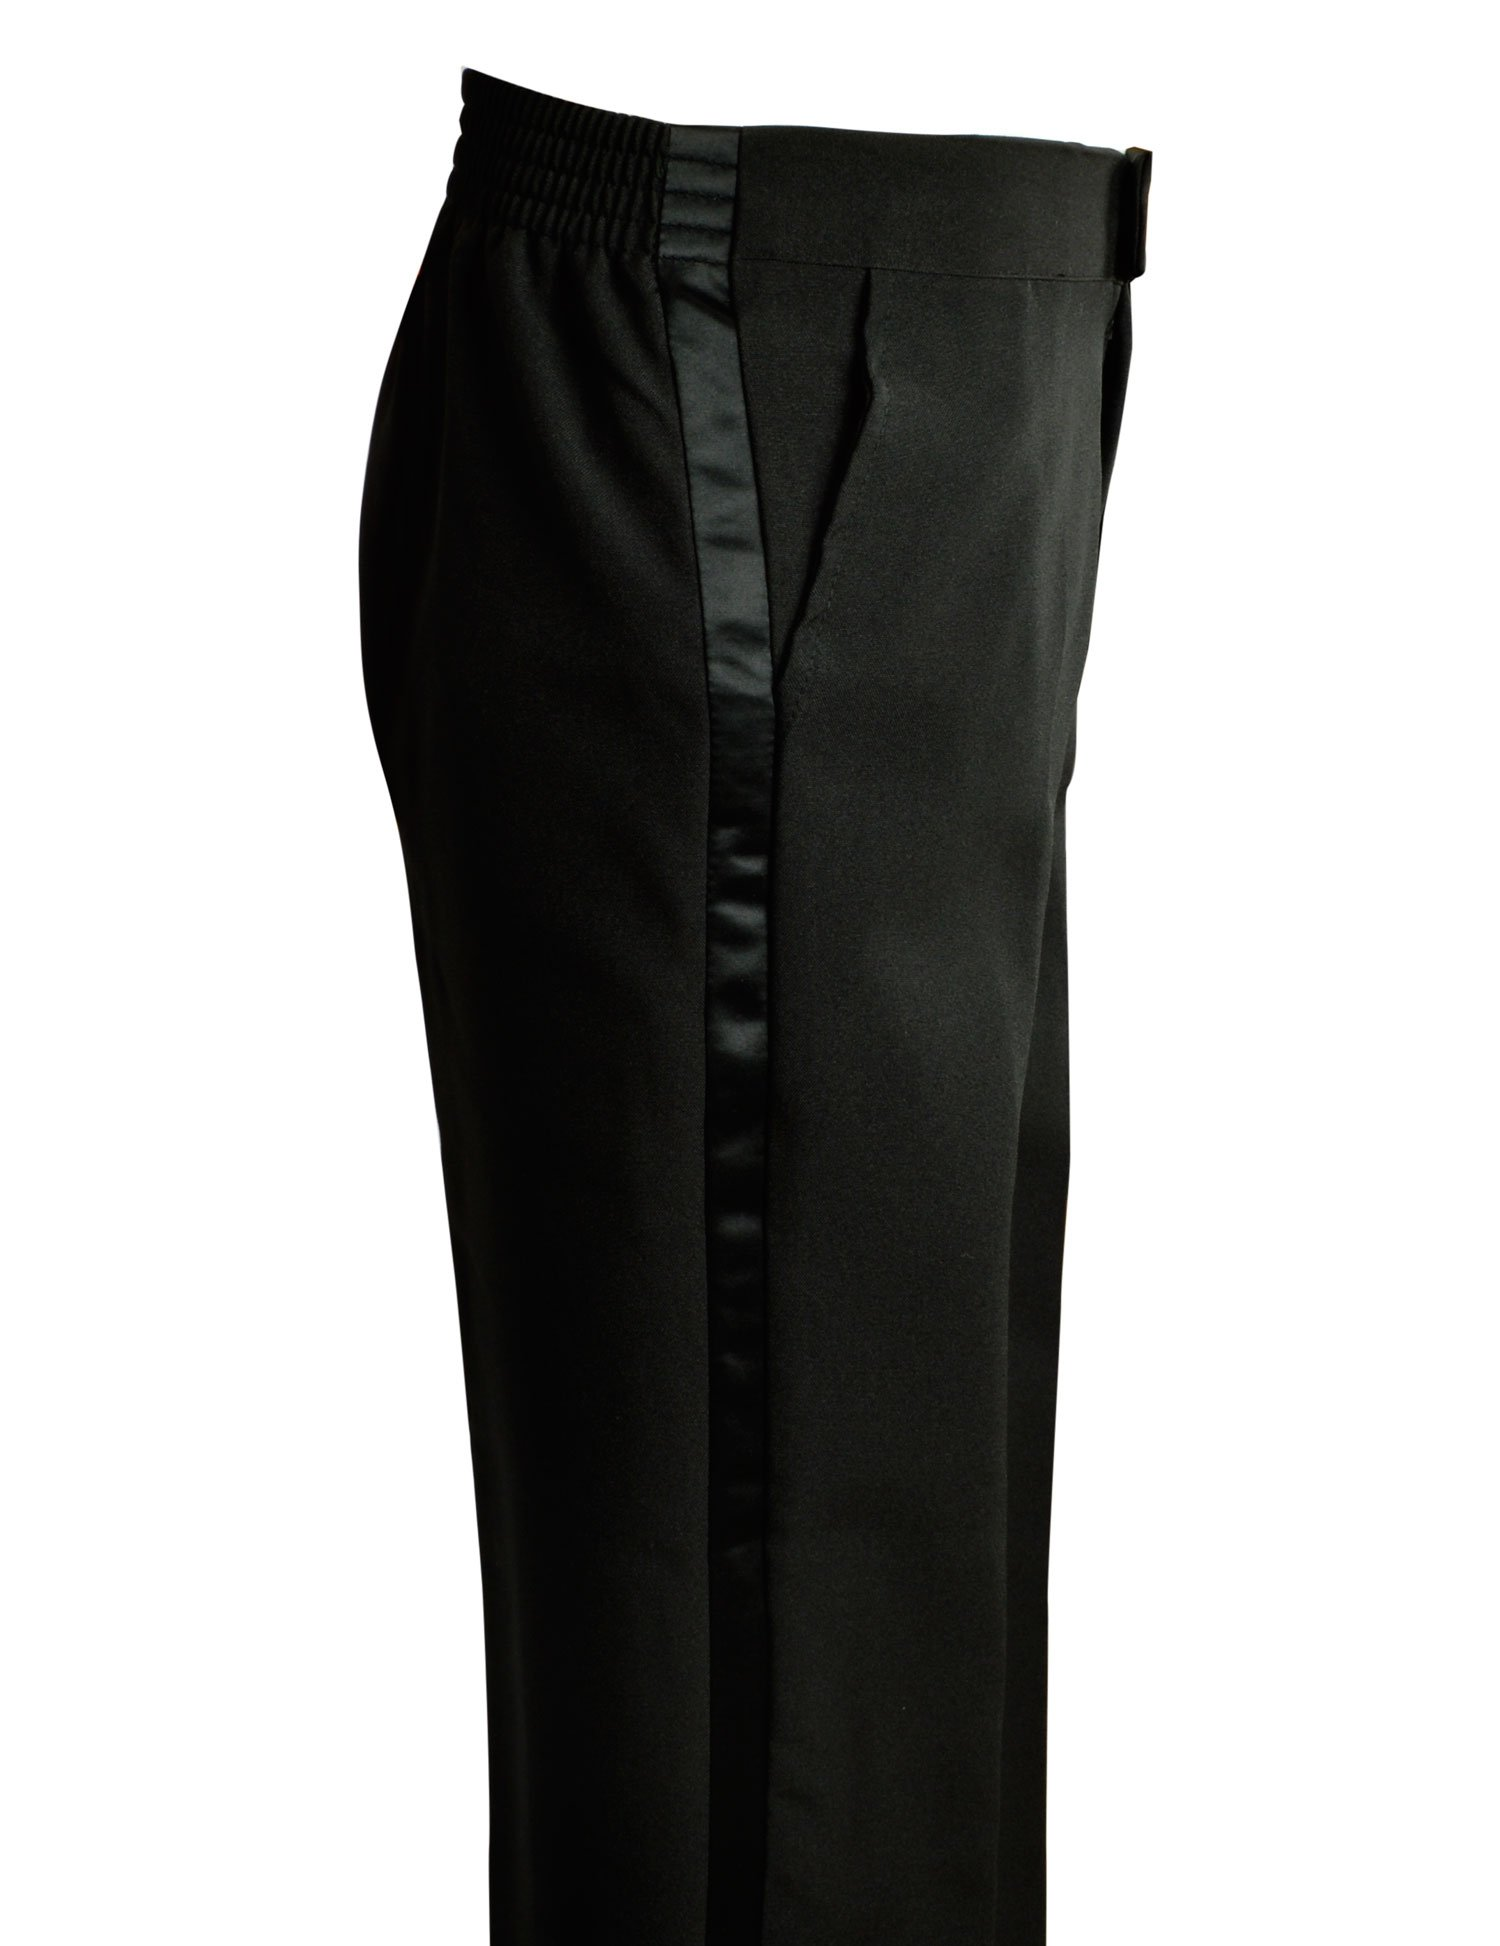 Spring Notion Boys' Black Classic Tuxedo with Tail Burgundy 4T by Spring Notion (Image #7)